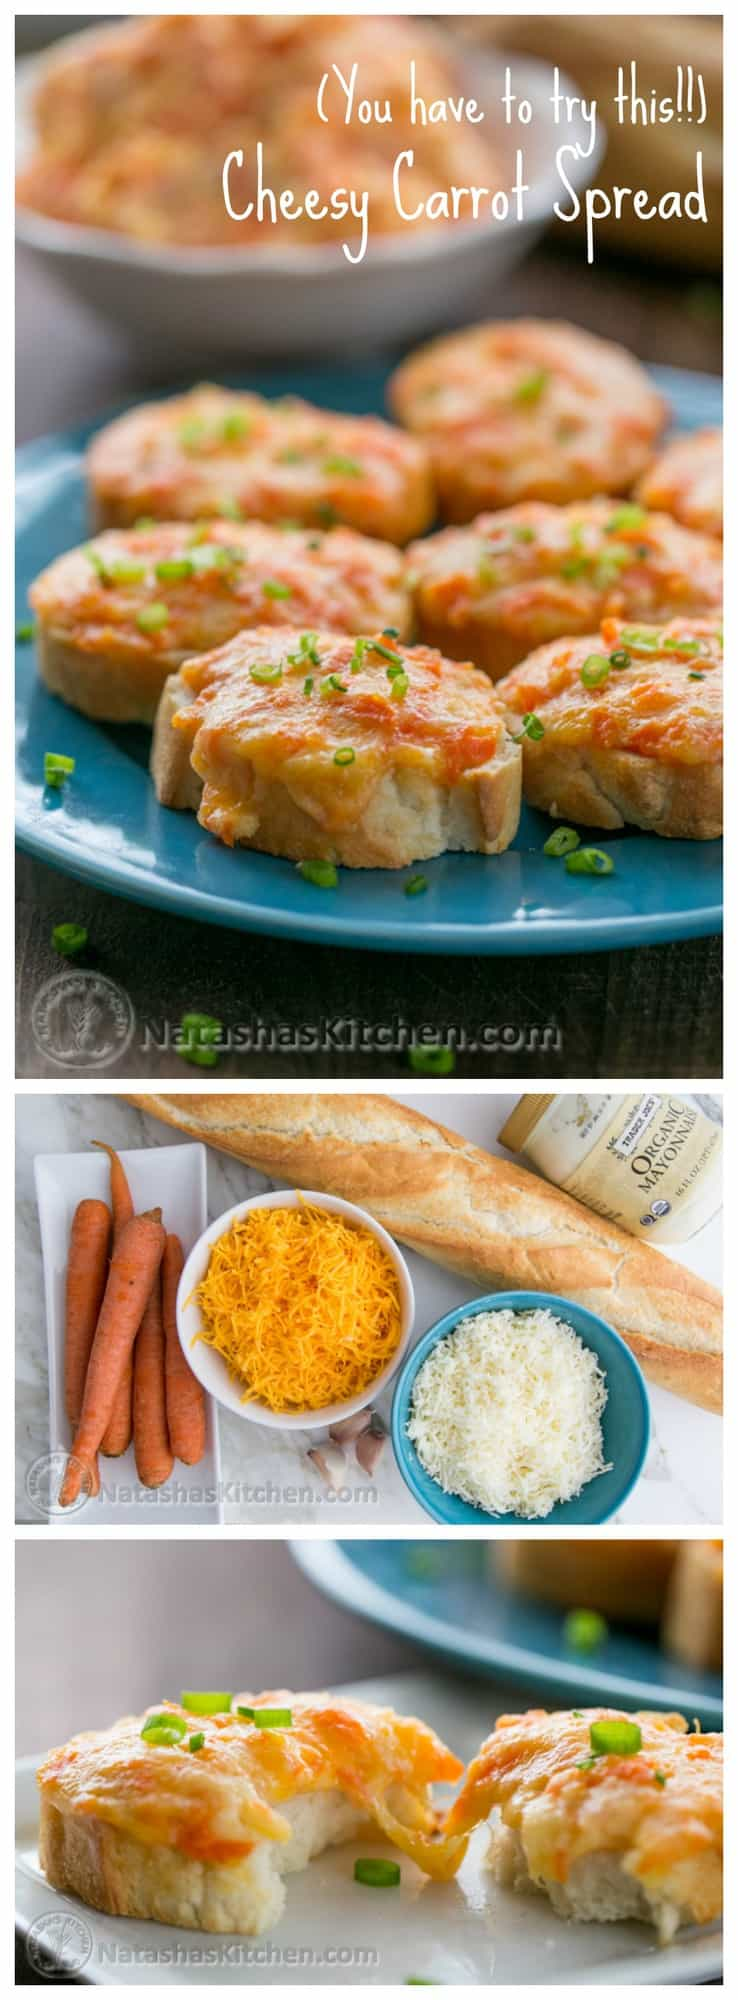 You have to try these Carrot and Cheese Crostini when they come out of the oven and the cheese is hot. Incredible! @NatashasKitchen